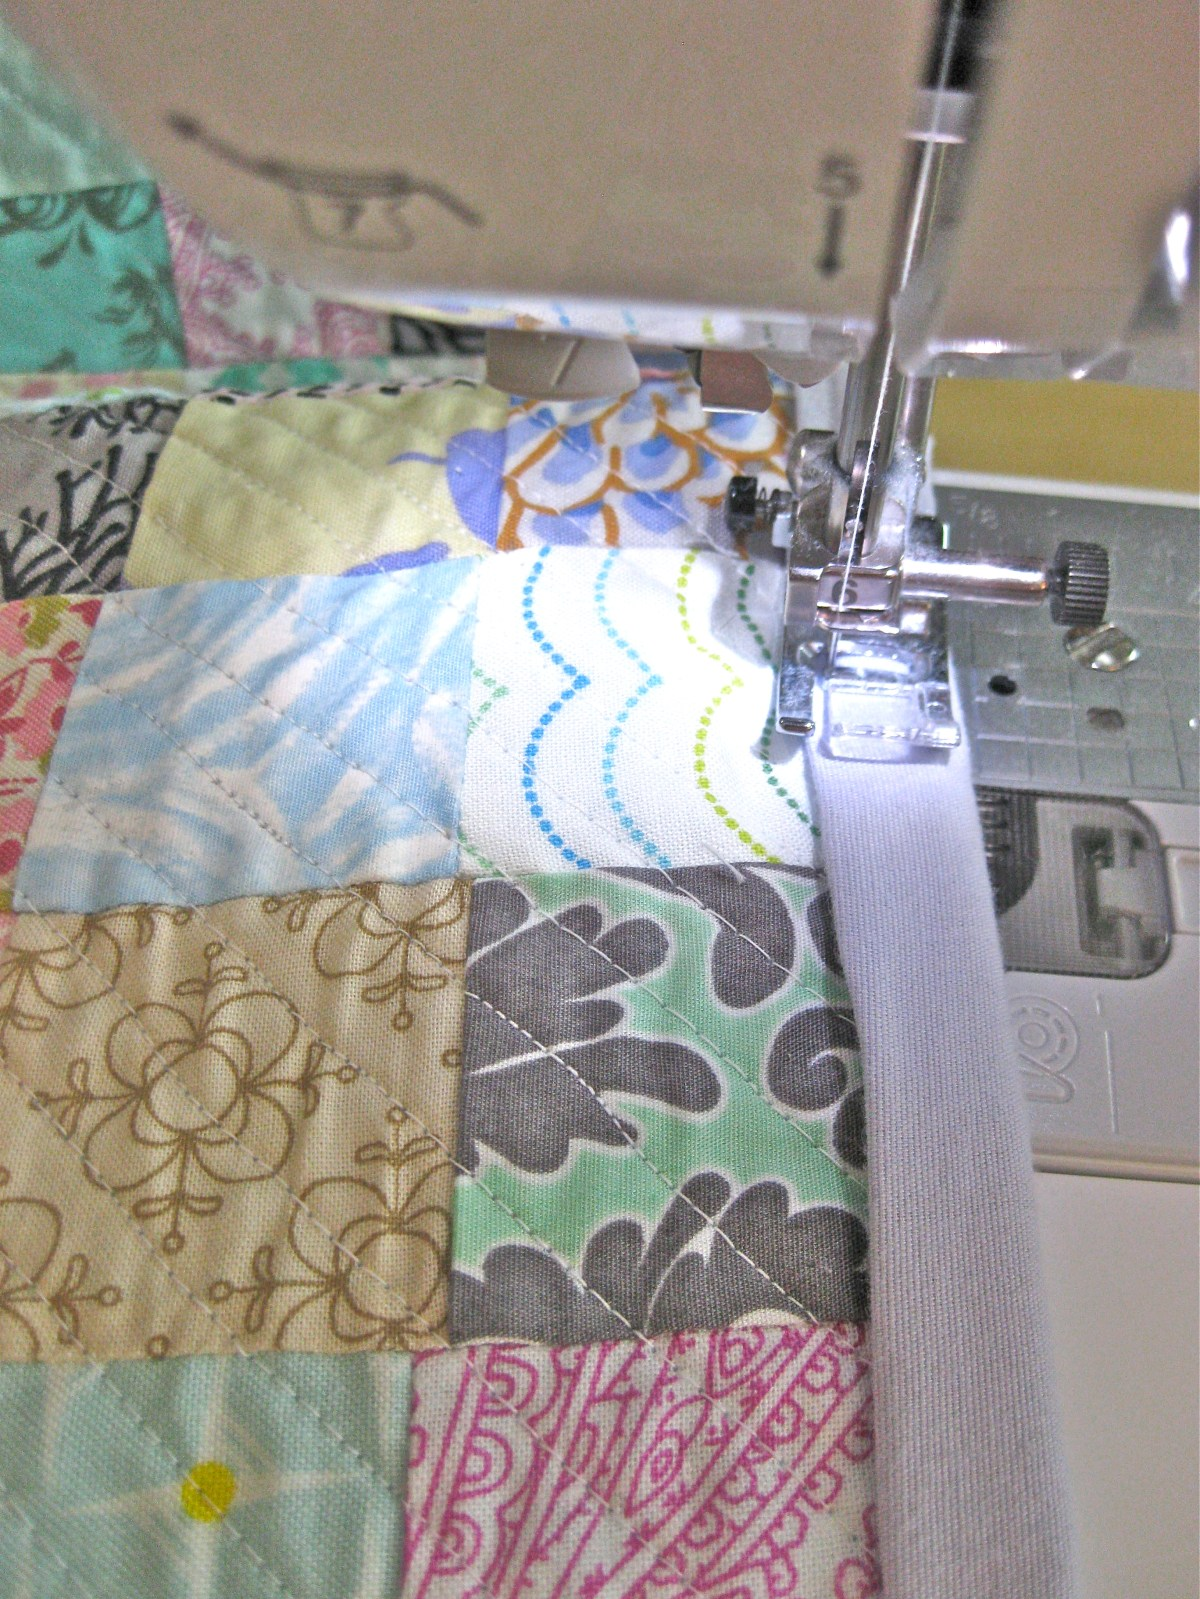 DIY Queen sized chenille quilt - sewing binding